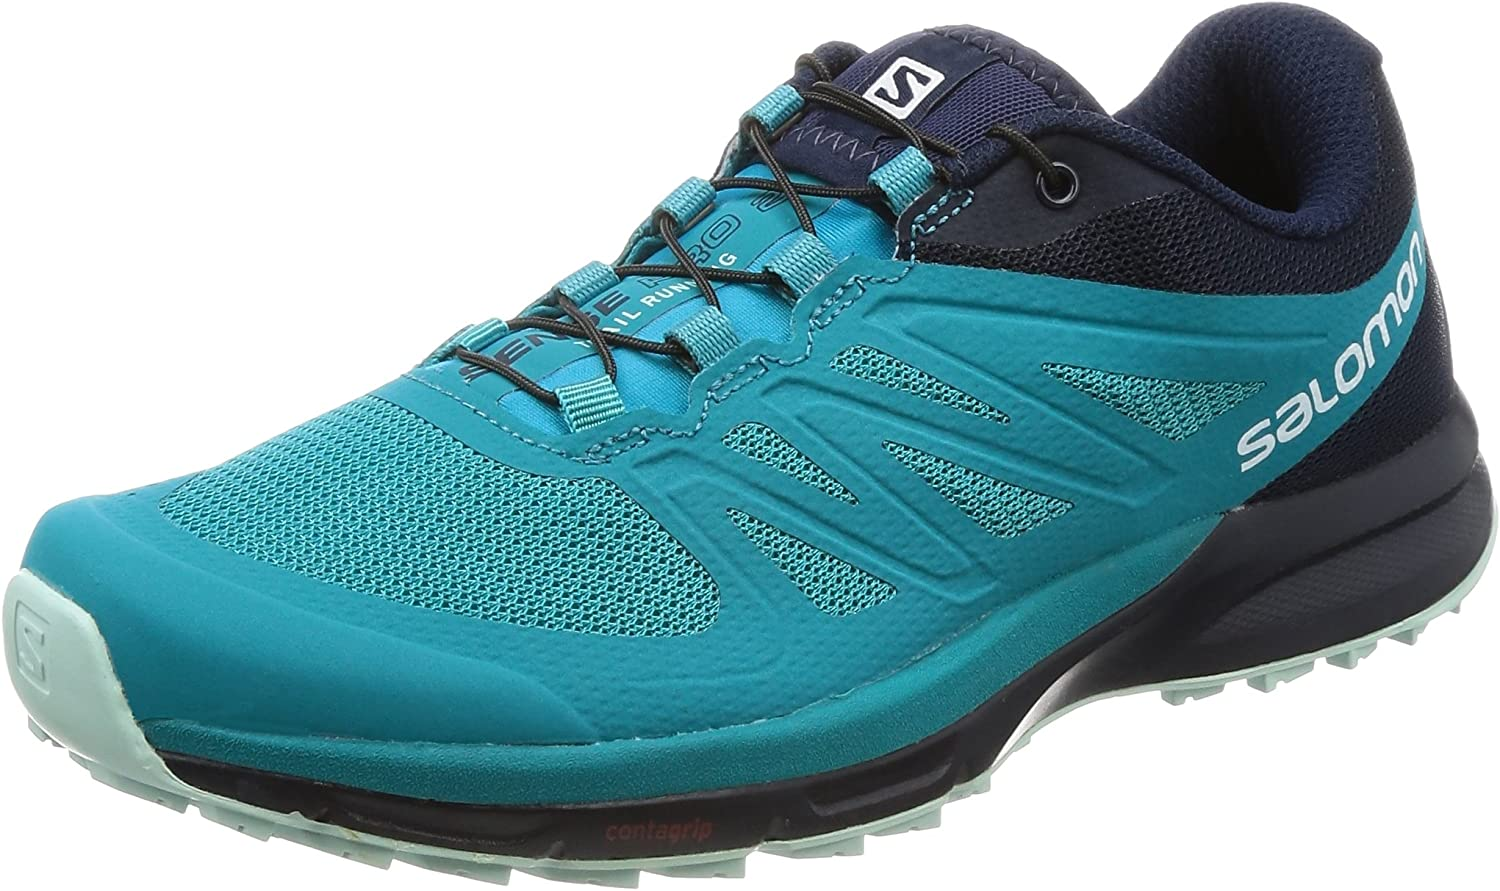 Salomon Women's Sense Pro 2 Running shoes